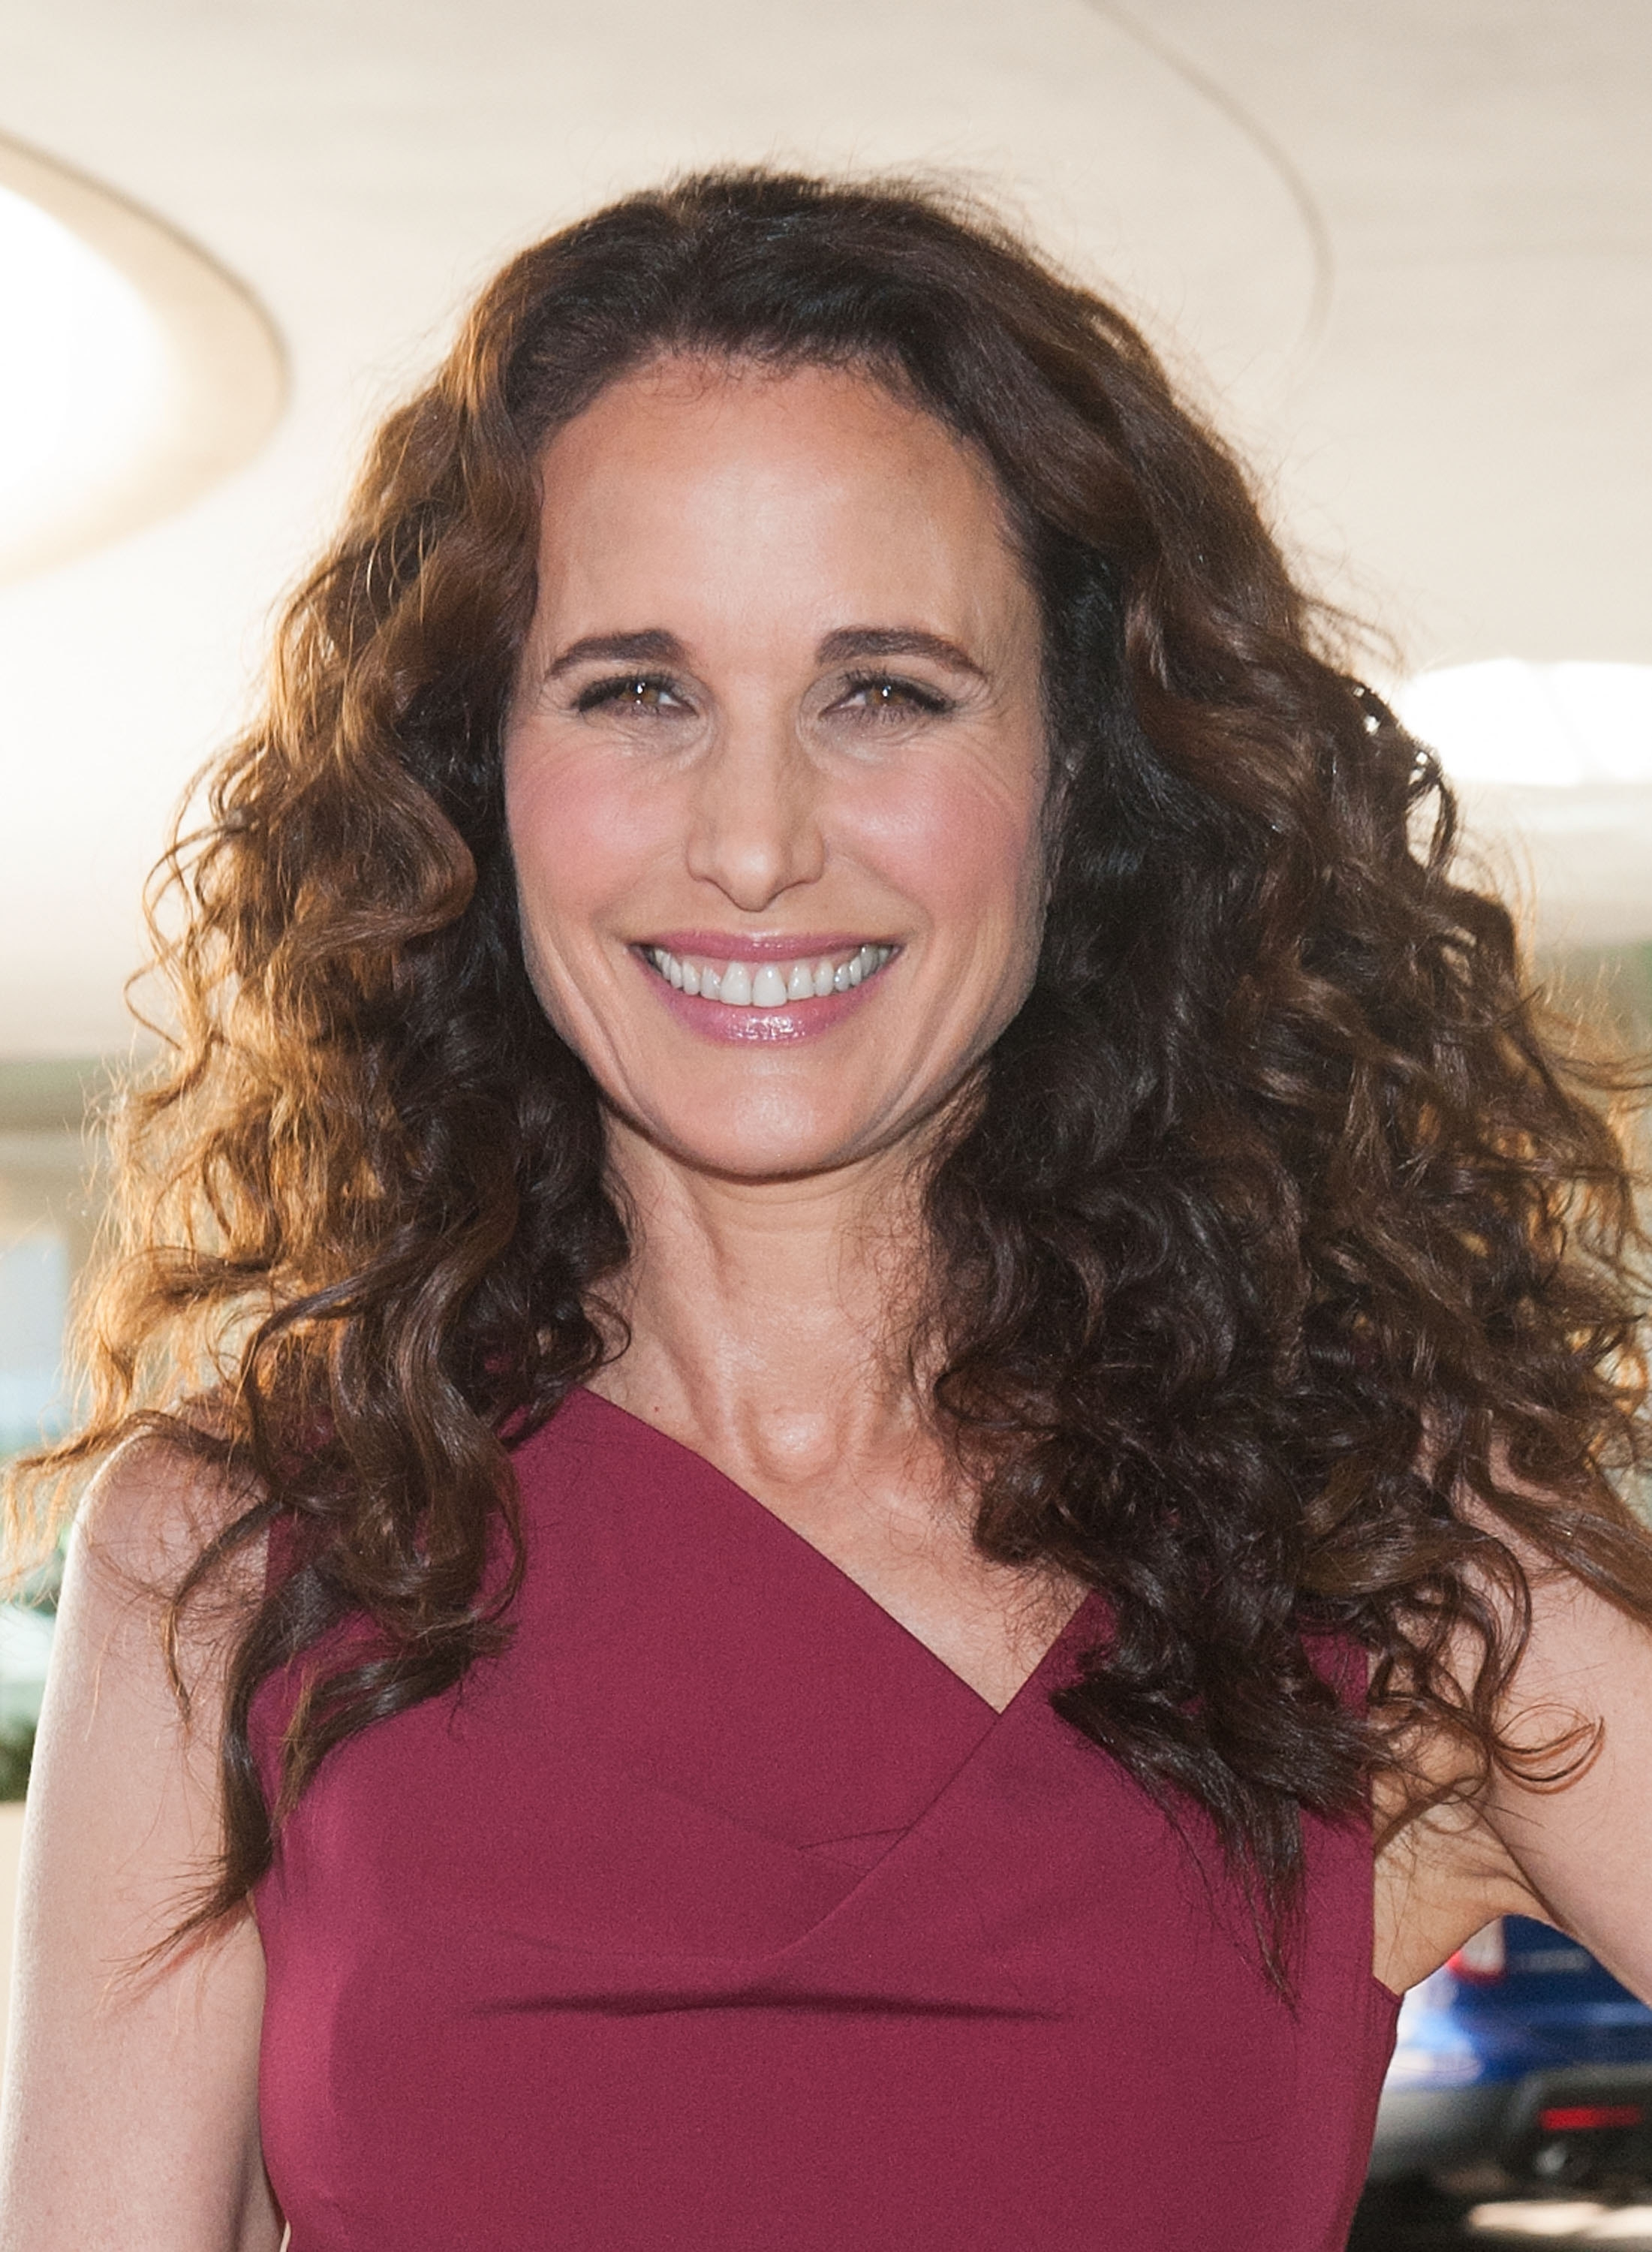 Andie MacDowell stars in the Hallmark Channel's first prime-time scripted series.